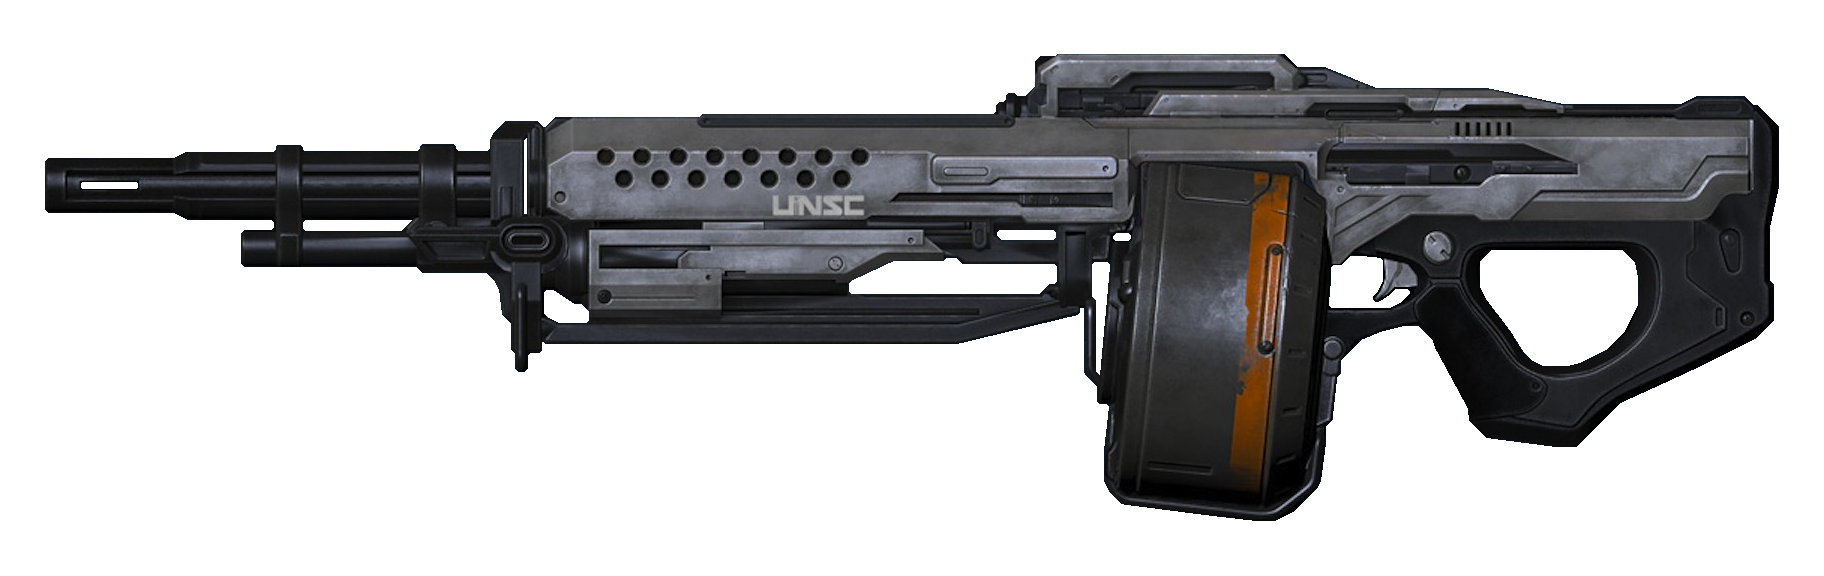 Machine gun PNG - Gun PNG Transparent Background